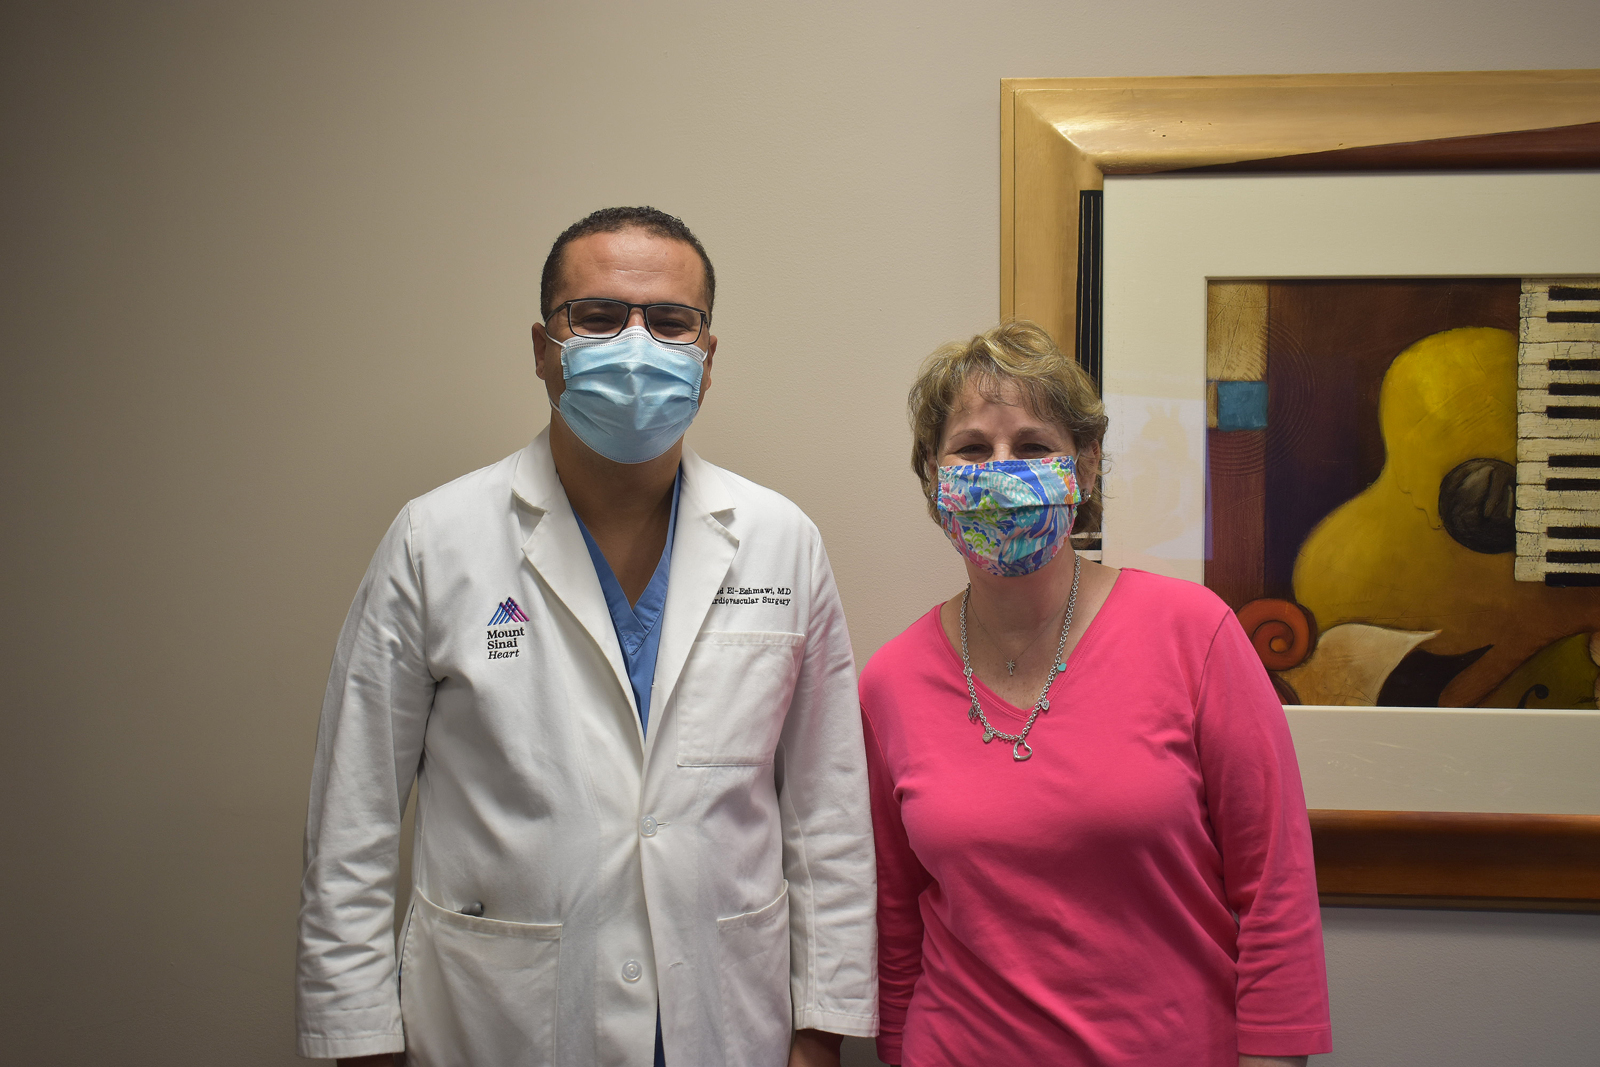 Dr. El-Eshmawi and Laurie during a follow-up visit 11 months after her surgery.